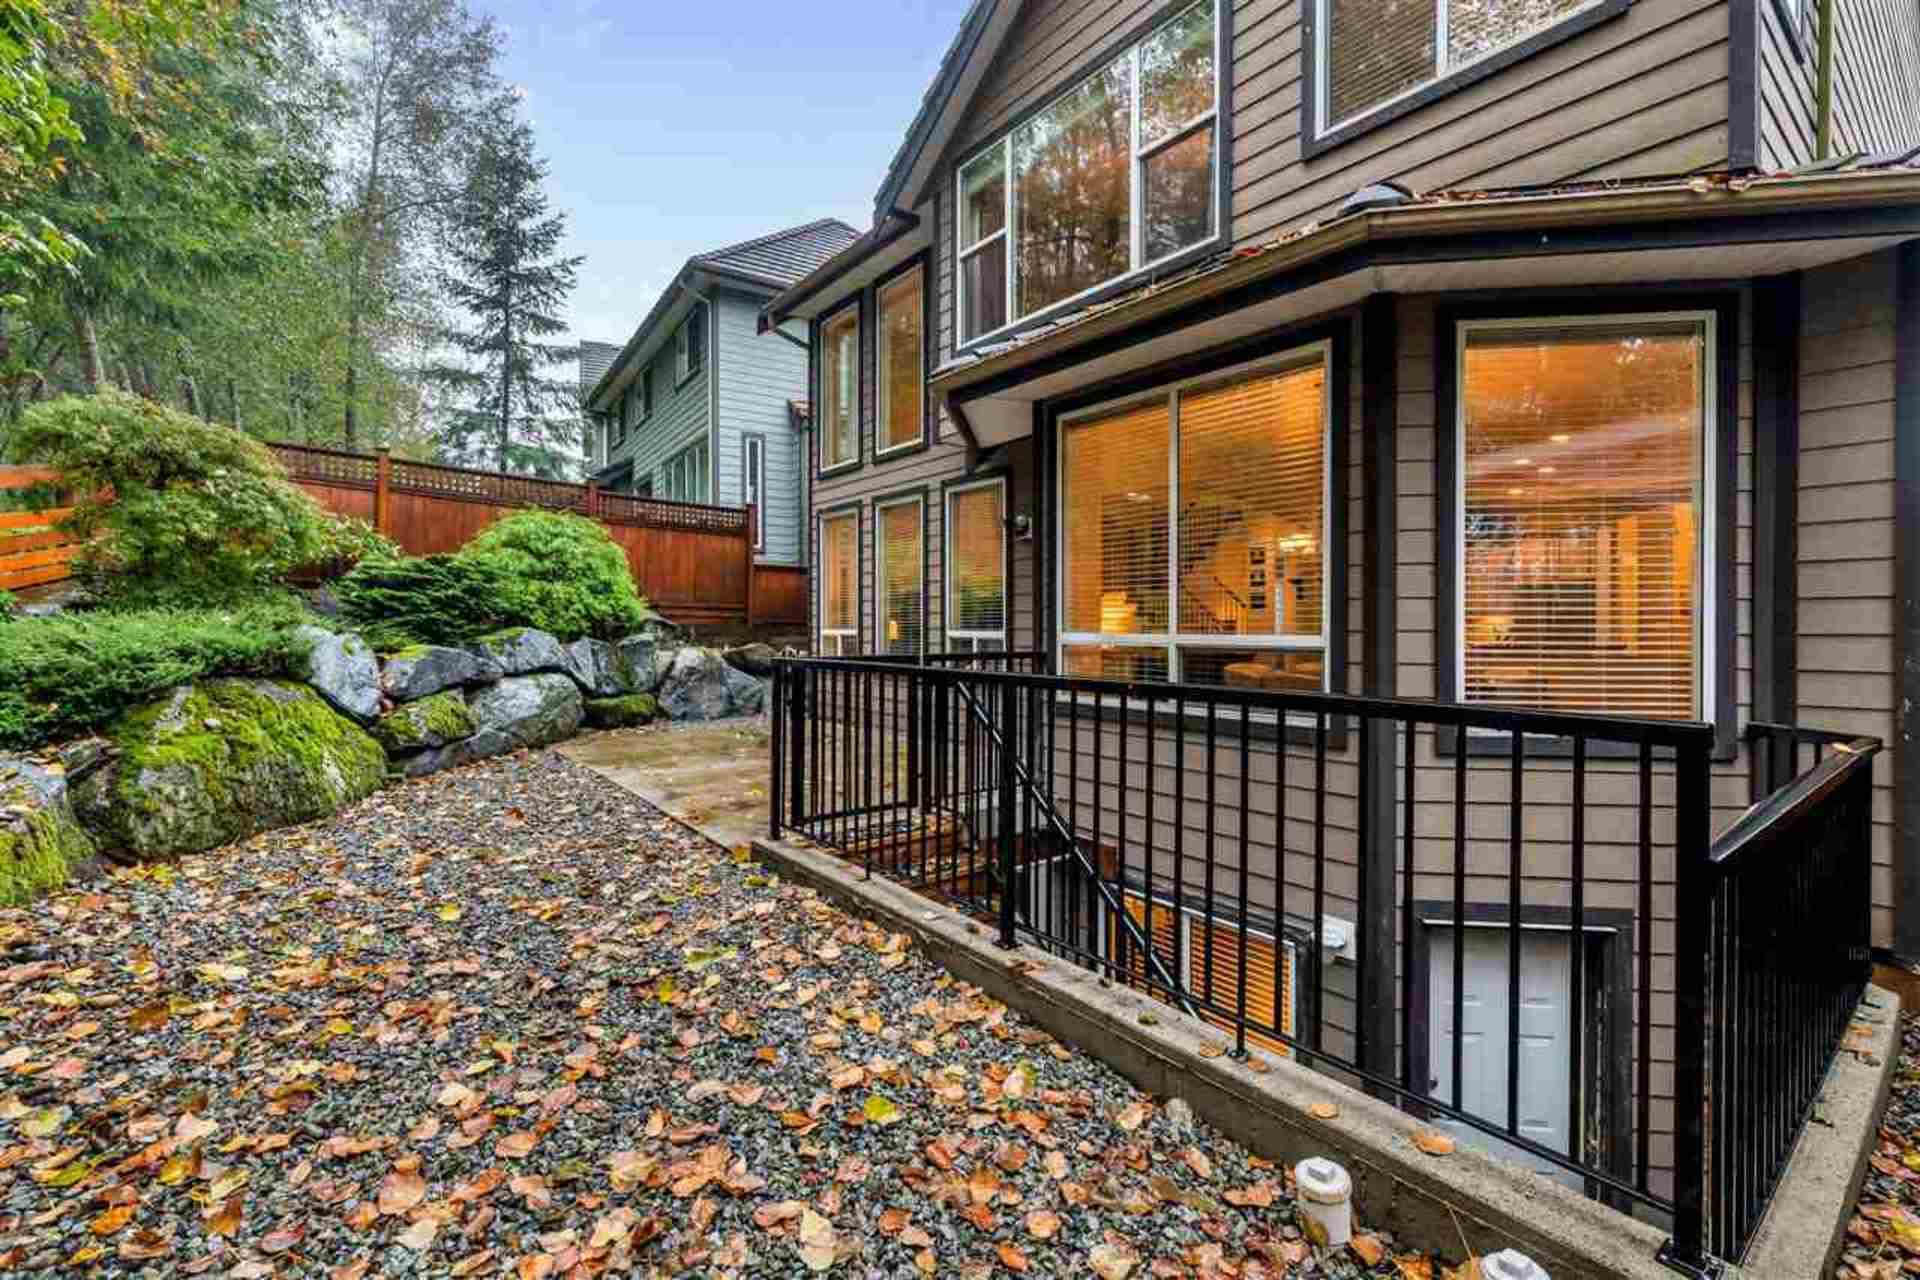 11430-154a-street-fraser-heights-north-surrey-18 at 11430 154a Street, Fraser Heights, North Surrey